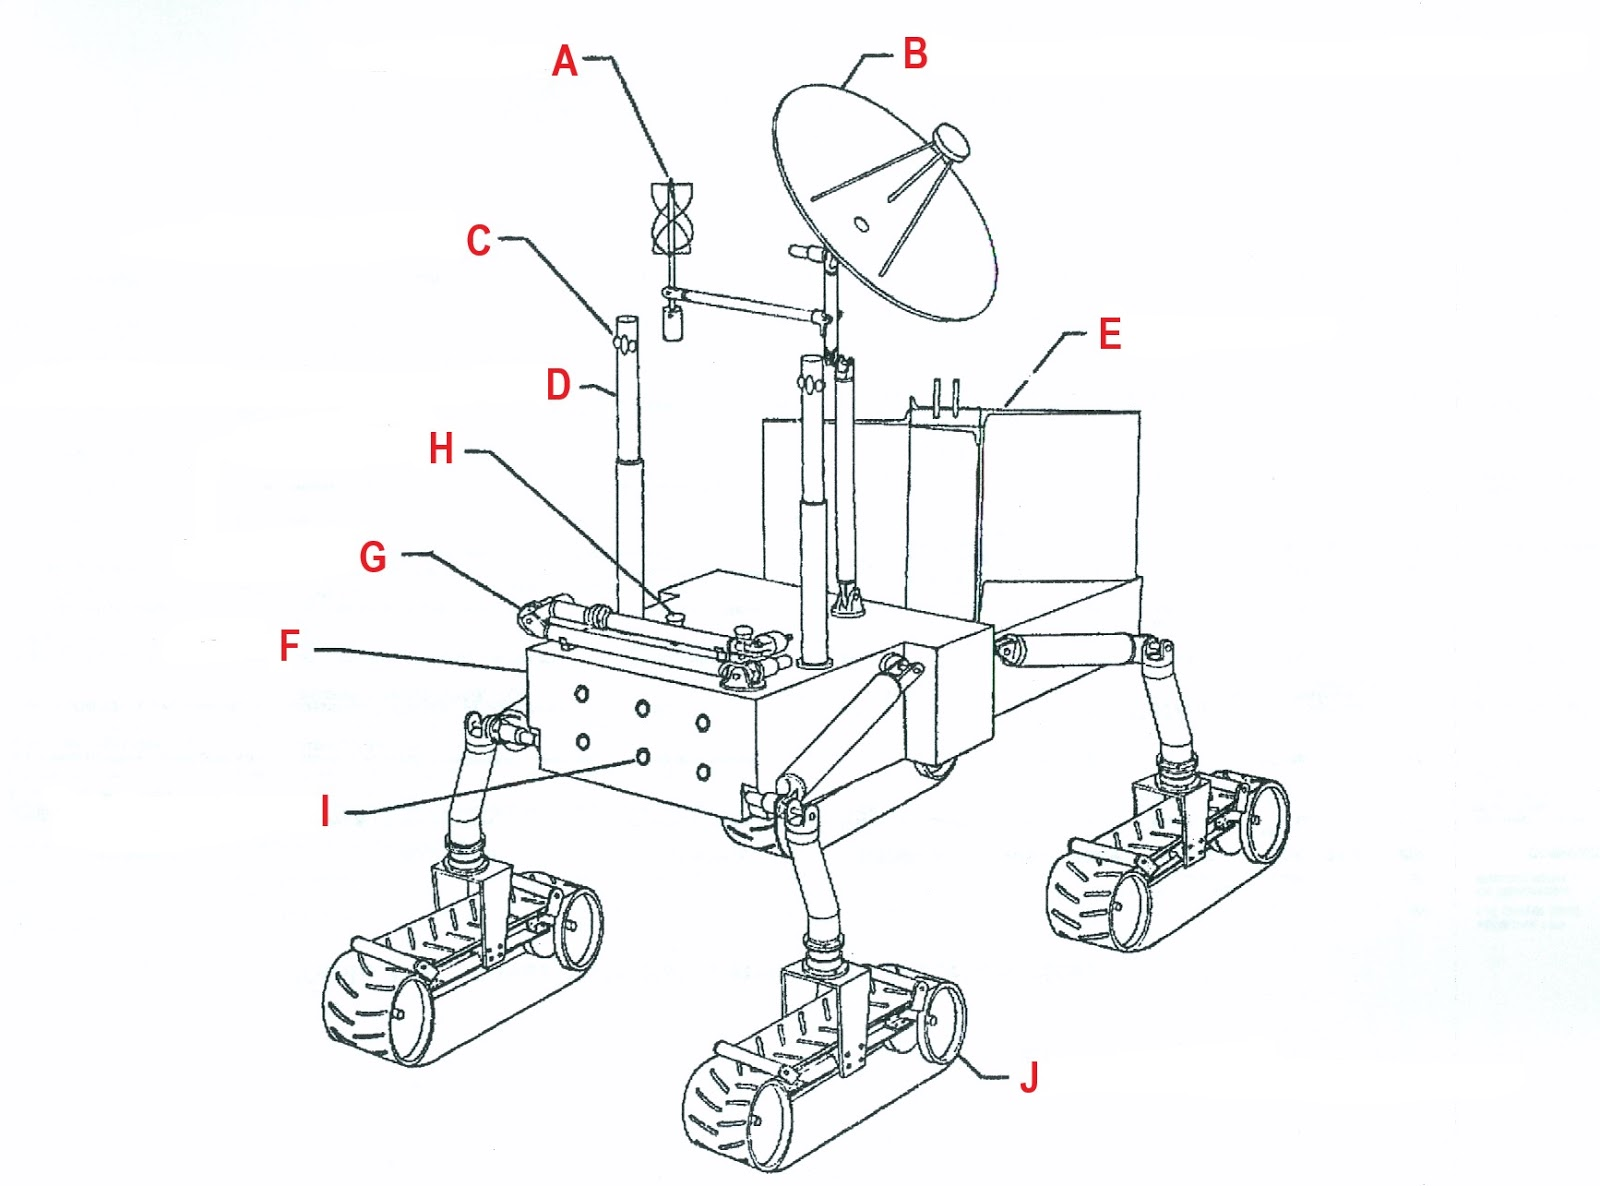 curiosity rover diagram delco remy alternator wiring mars engine and